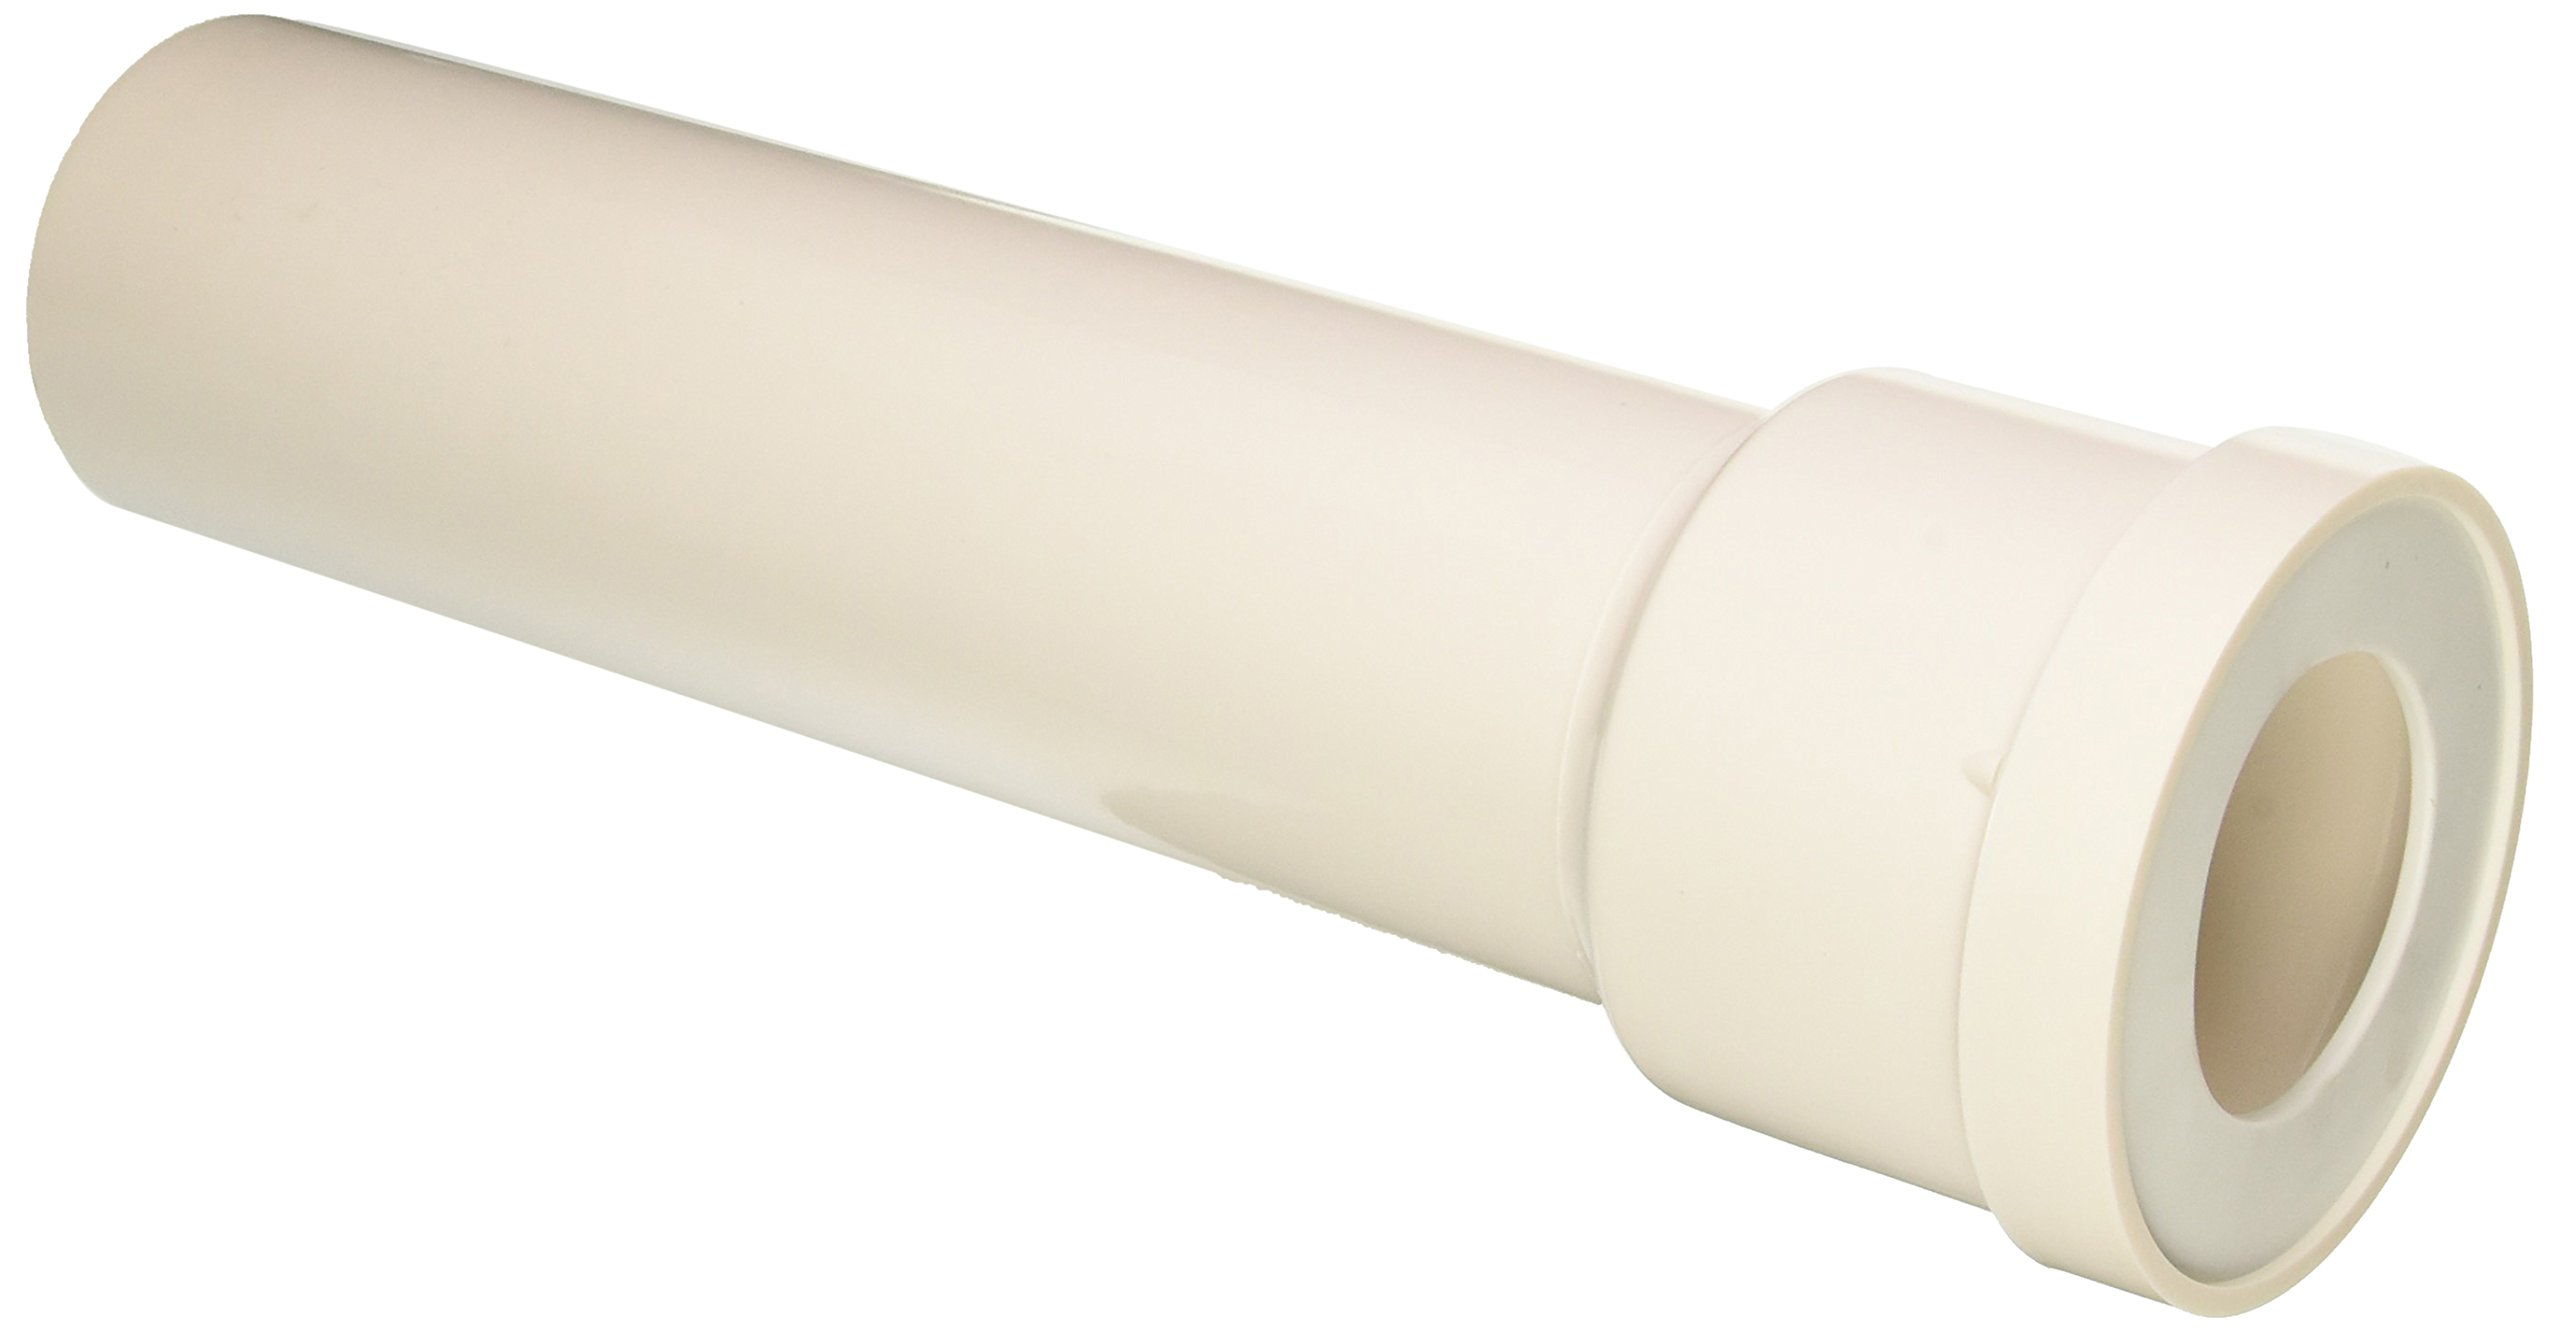 Saniflo 030 Extension Pipe, Extension Pipe Between Toilet and Macerator, White by Saniflo